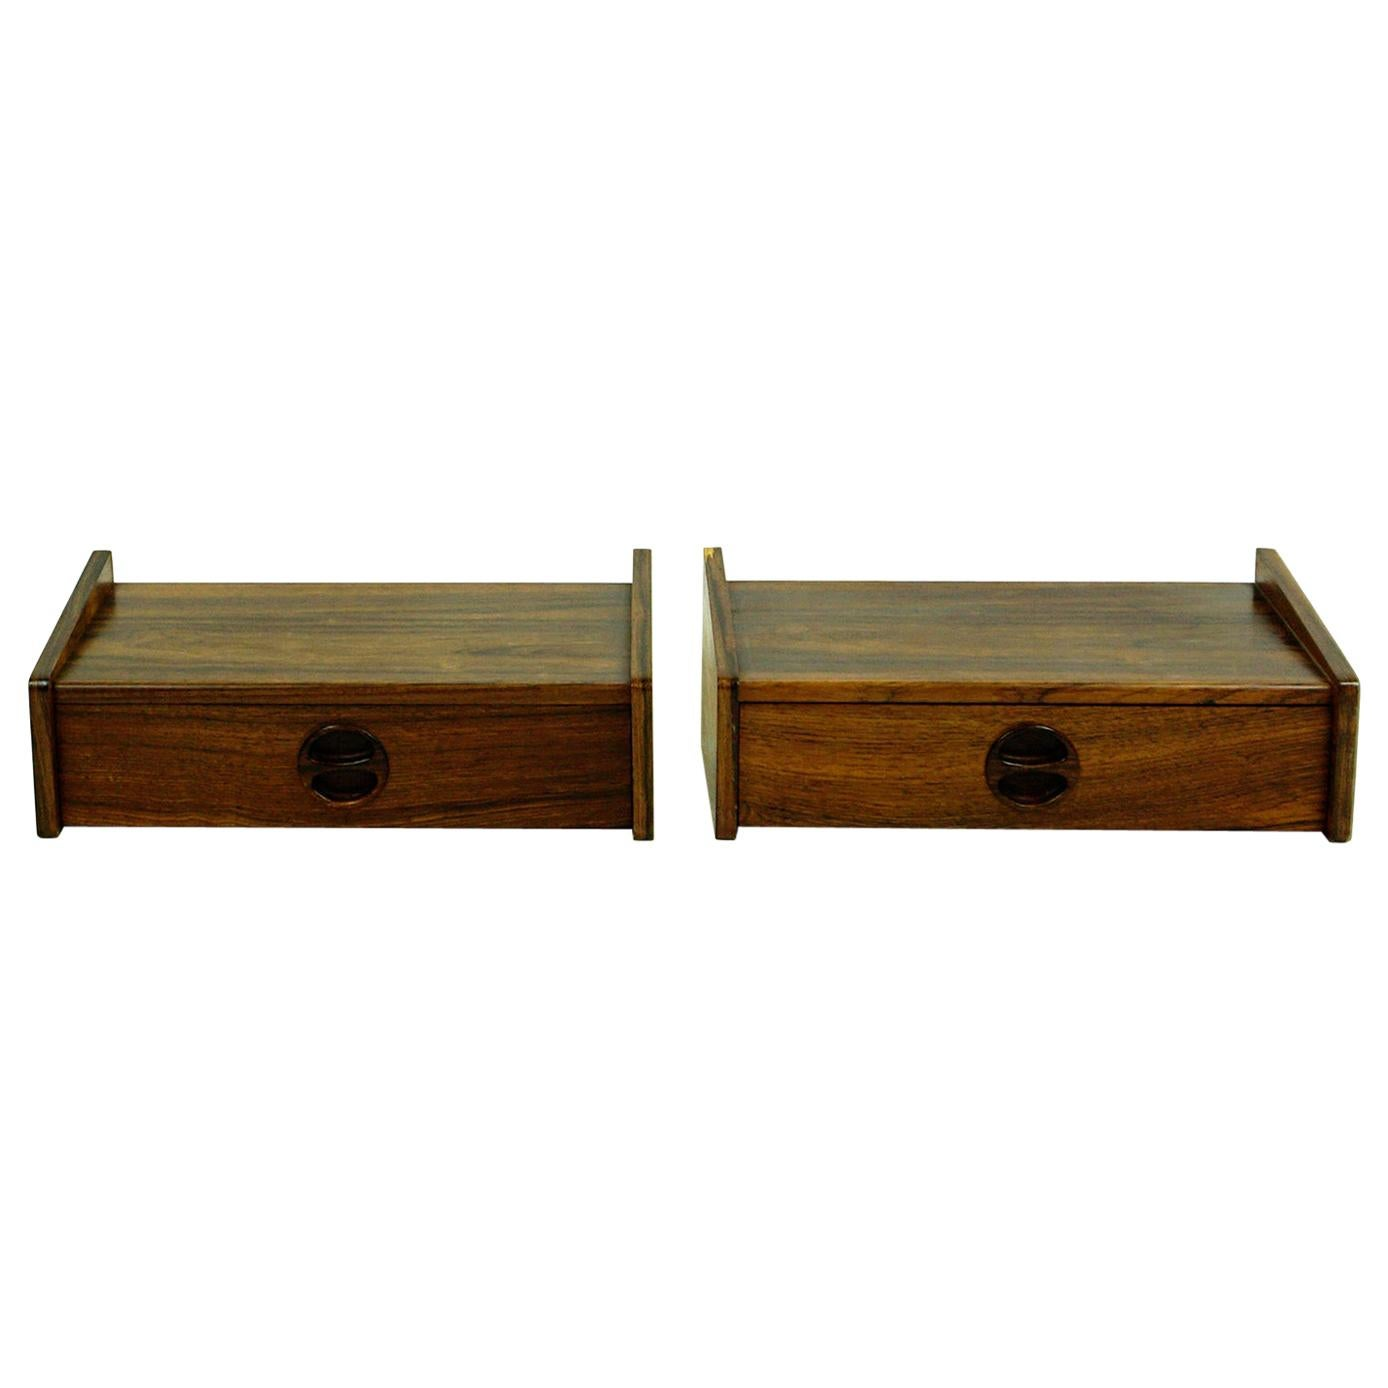 Pair of Danish Floating Rosewood Nightstands with Drawers from the 1960s